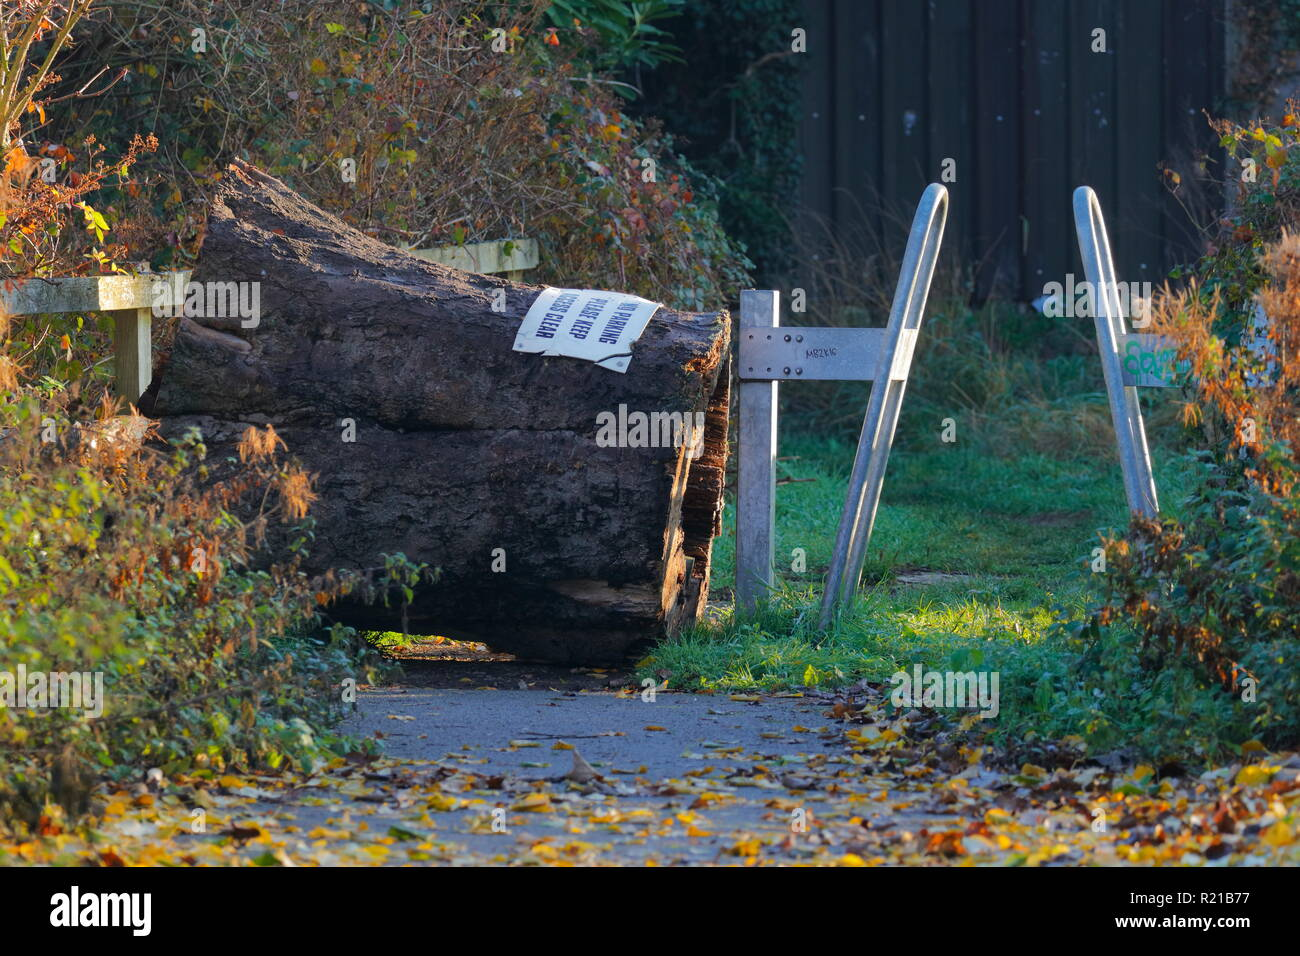 A tree stump is used to block off a gap in a footpath to prevent motorcyclists from using the footpath. Stock Photo